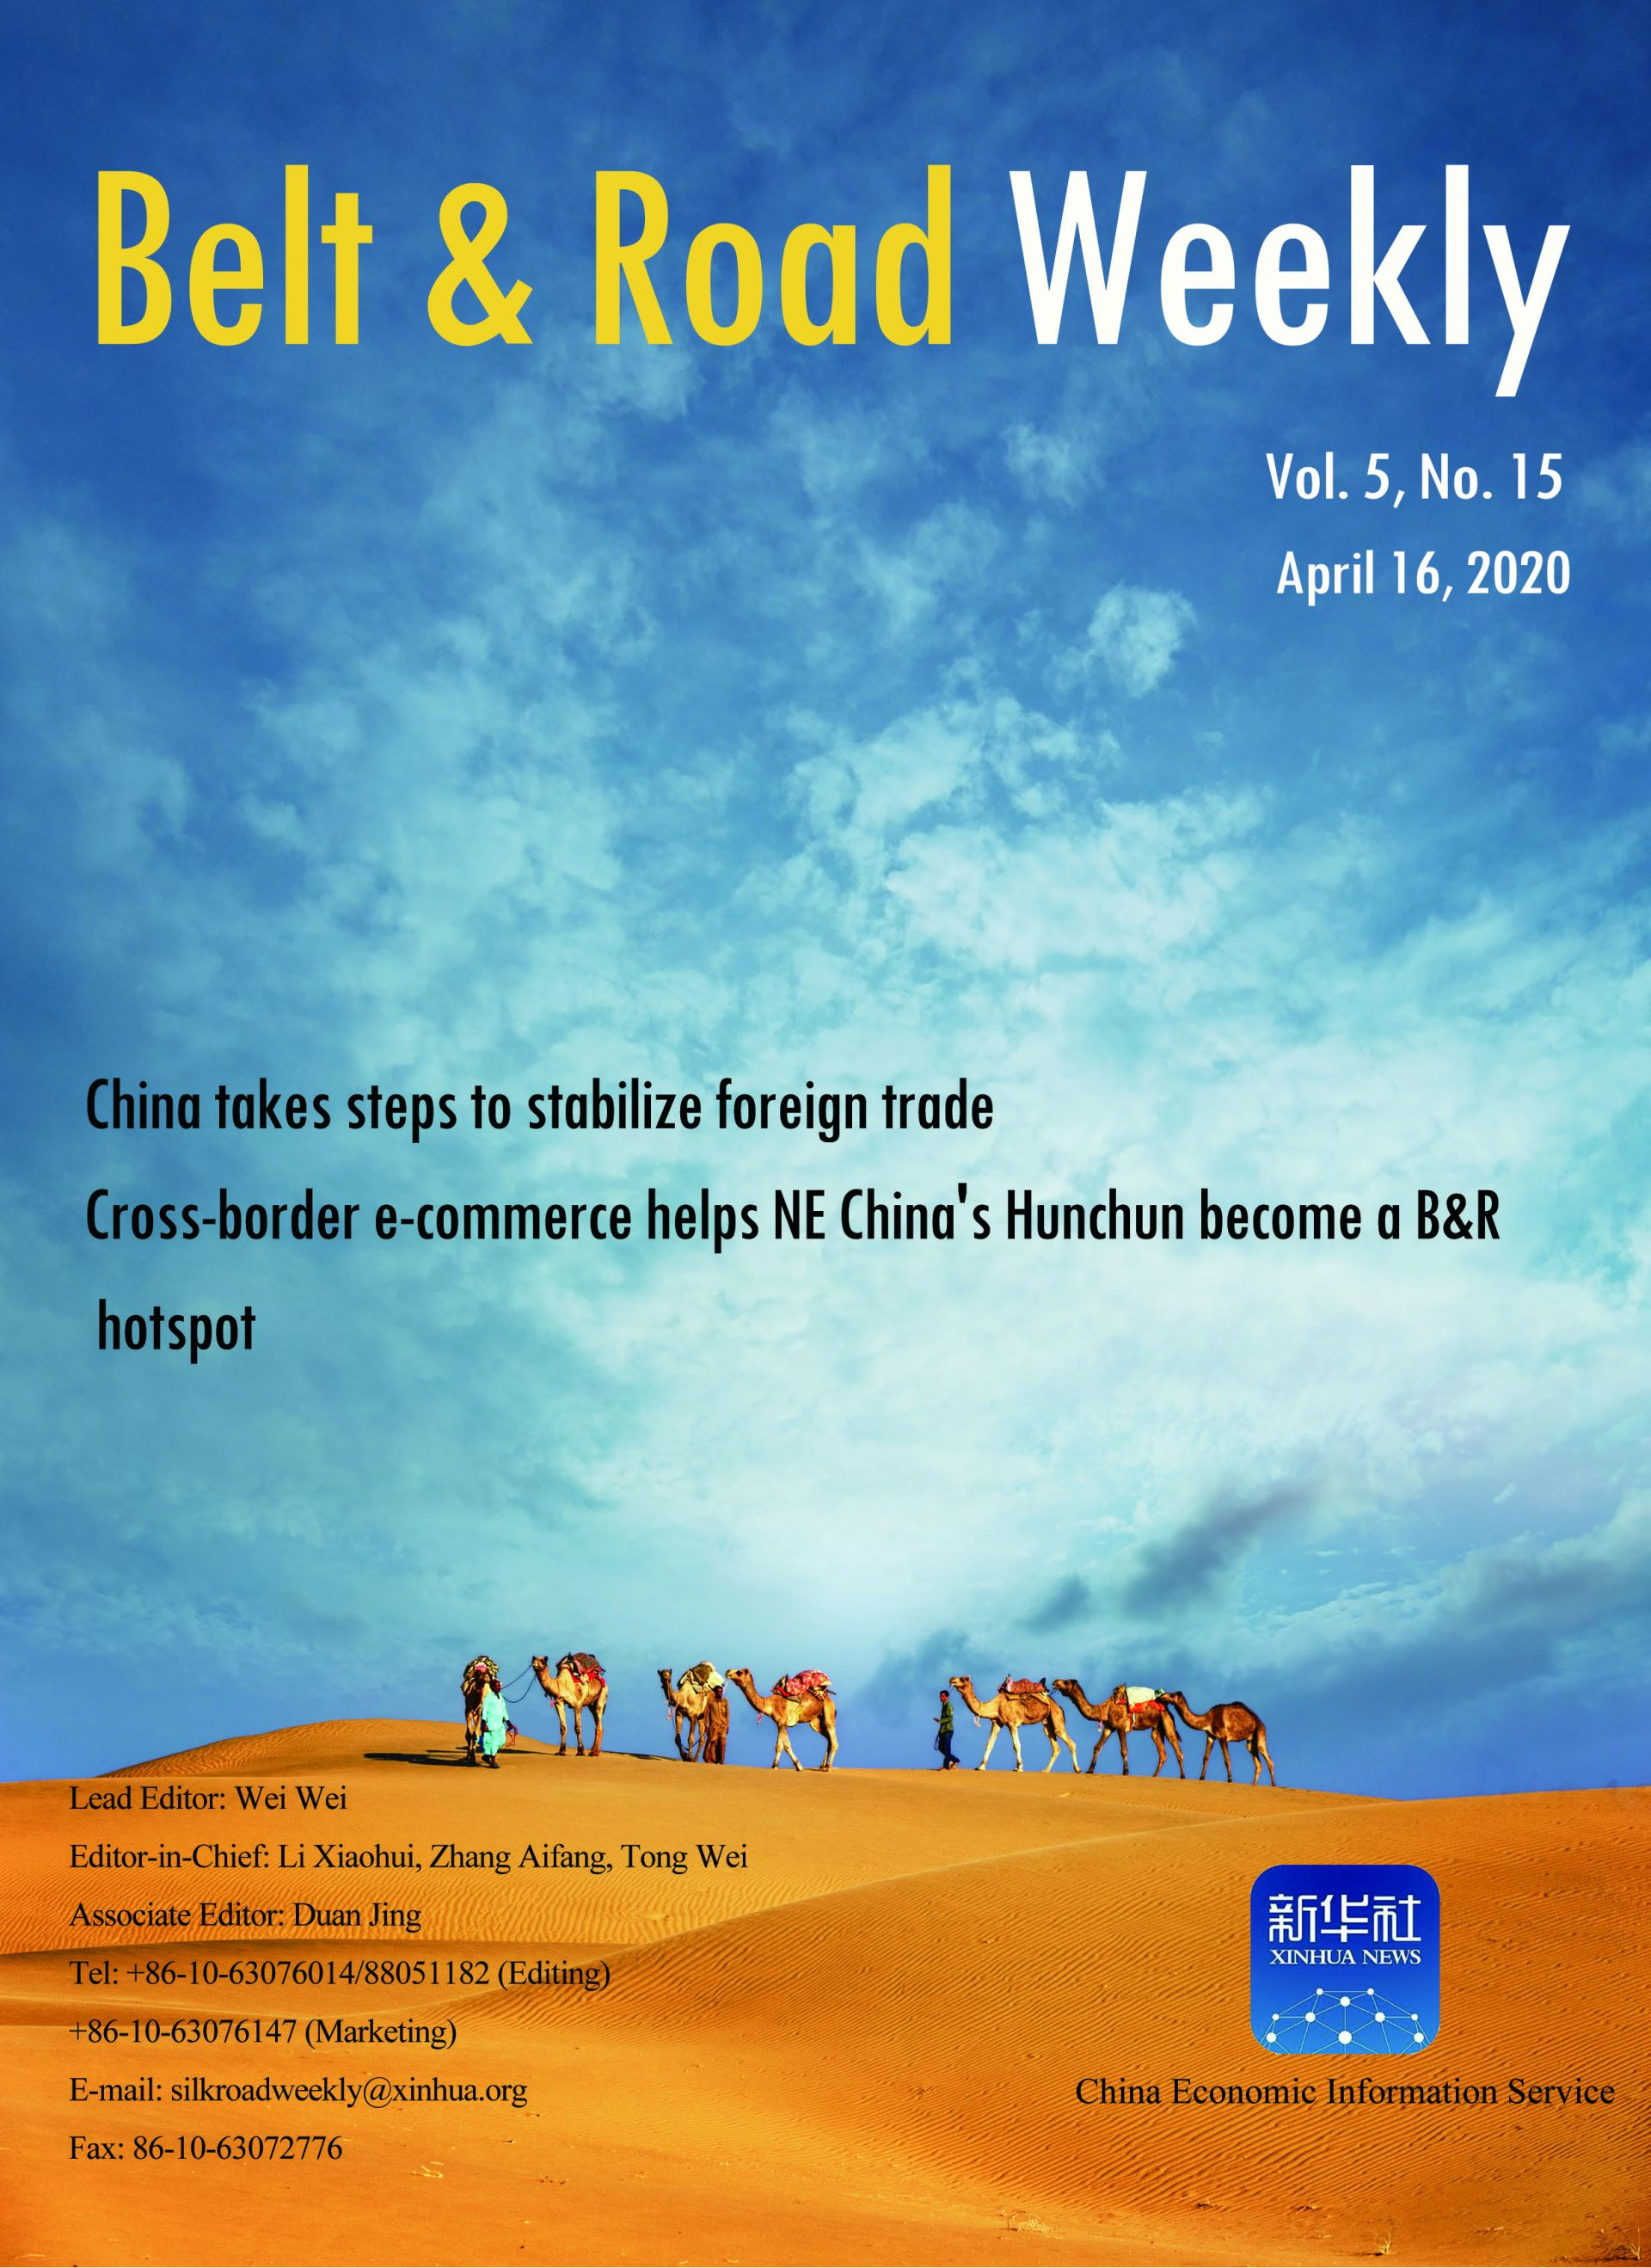 Belt & Road Weekly Vol. 5 No. 15